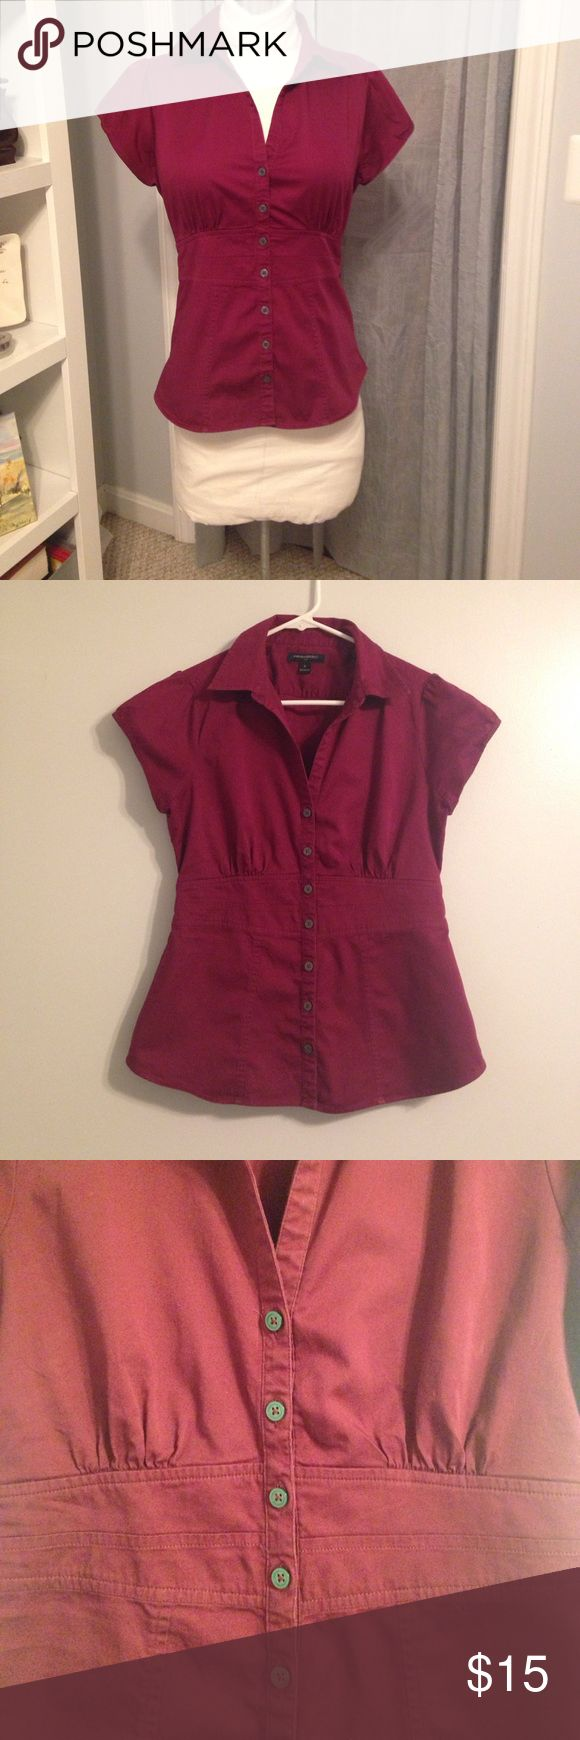 Banana Republic Burgundy Top Striking burgundy cap-sleeved cotton/spandex button -down top.  Perfect condition, cool, comfy and and ready to go for summer! Banana Republic Tops Button Down Shirts